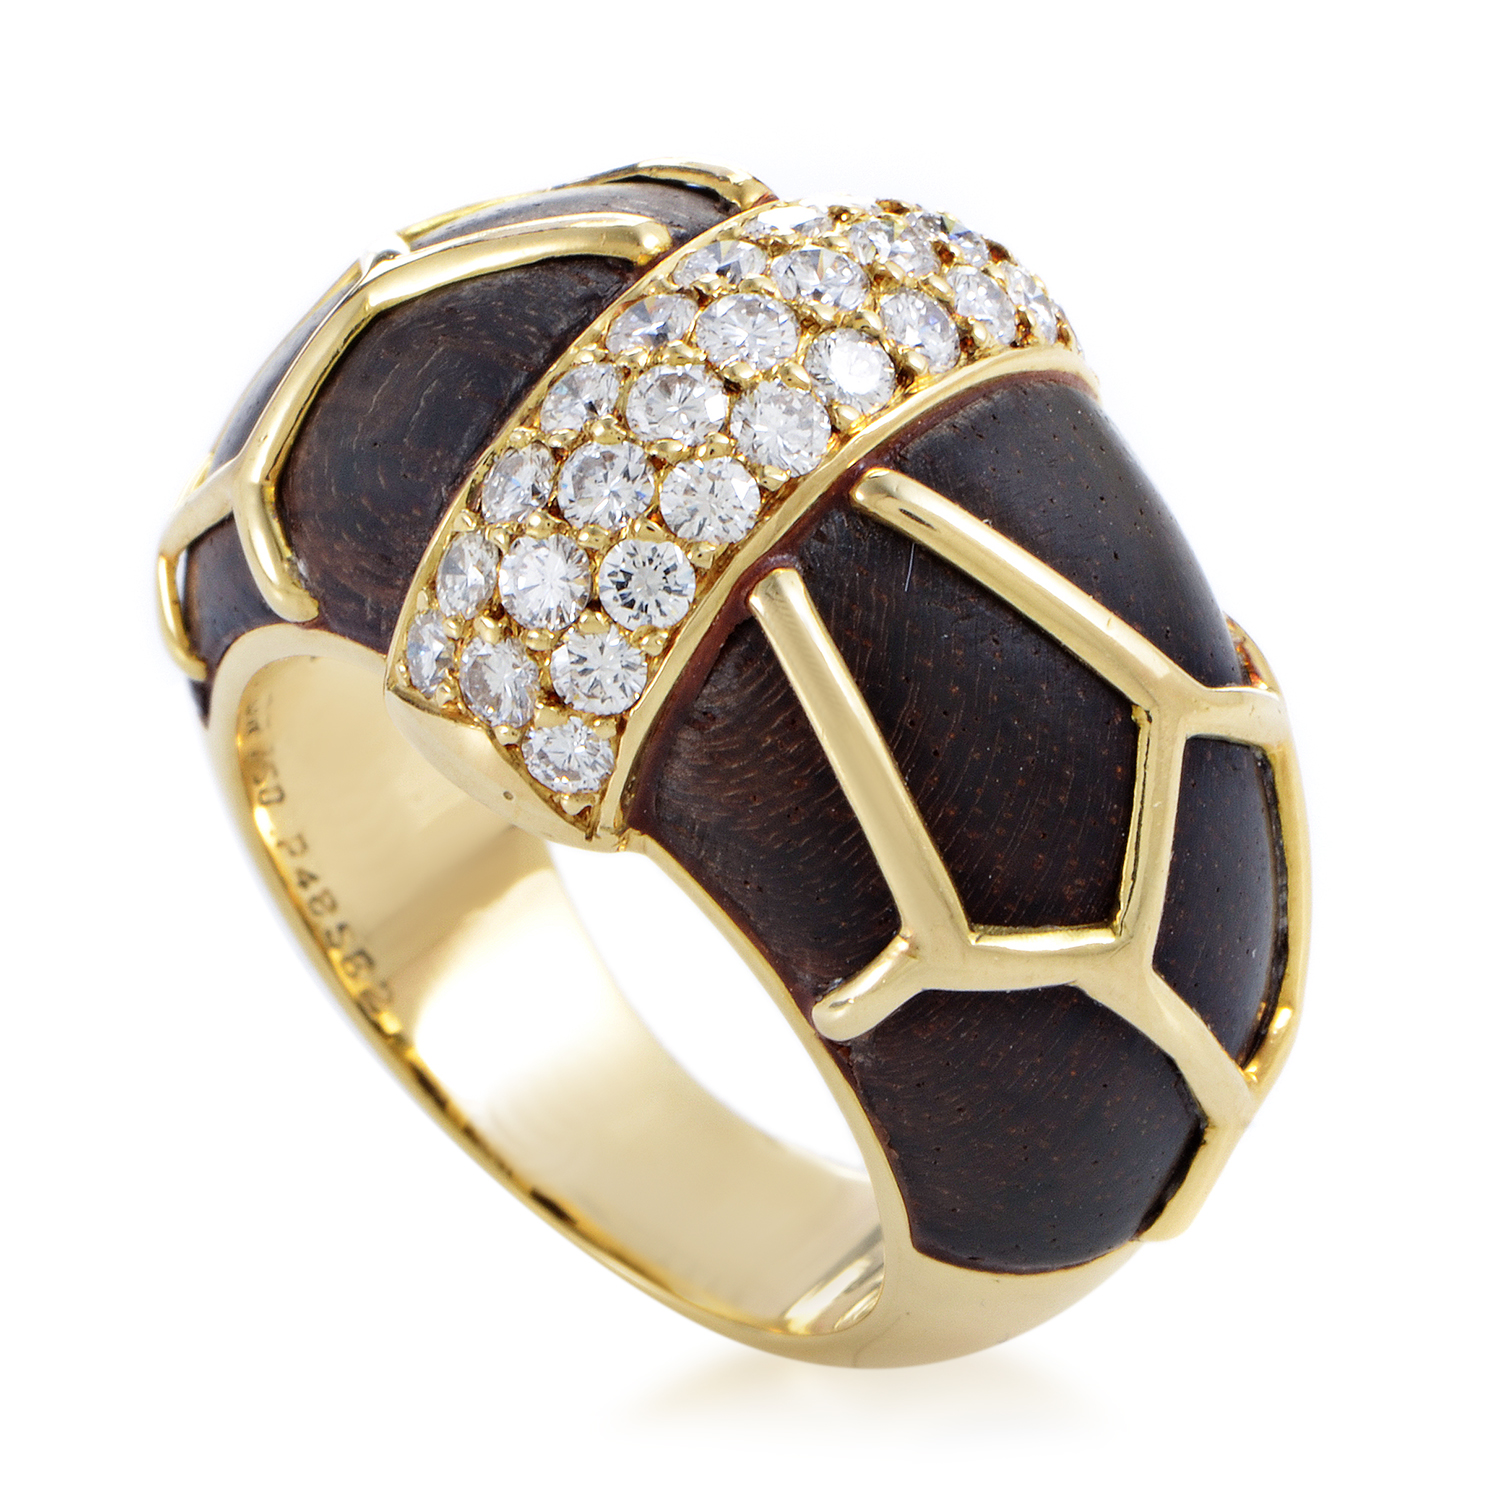 Boucheron Women's 18K Yellow Gold Diamond & Wood Band Ring